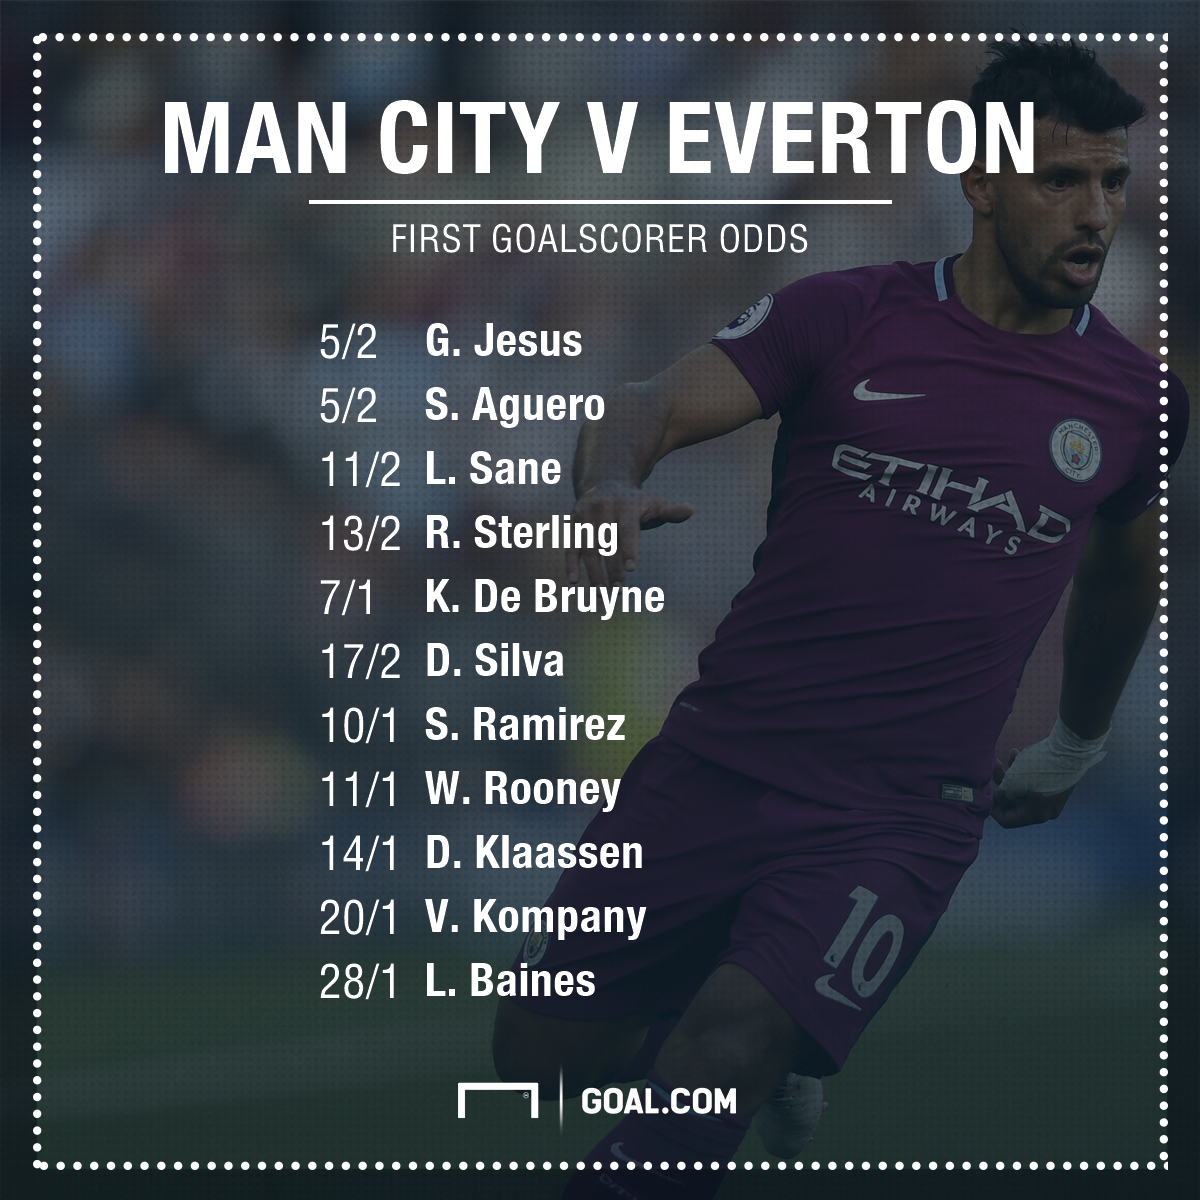 Man City v Everton betting